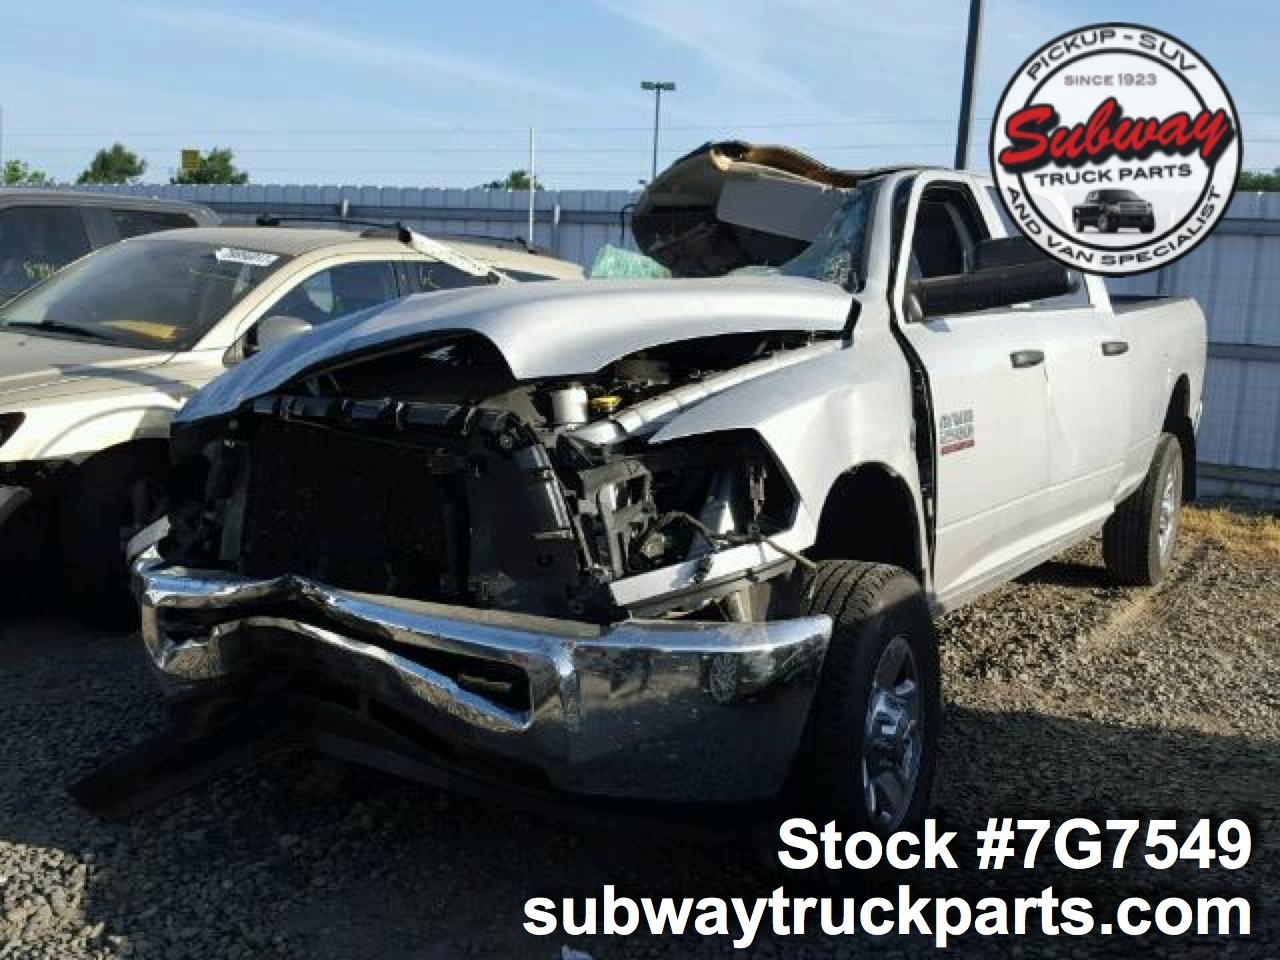 used parts 2016 dodge ram 2500 6 7l turbo diesel 4x4 subway truck parts inc auto recycling. Black Bedroom Furniture Sets. Home Design Ideas